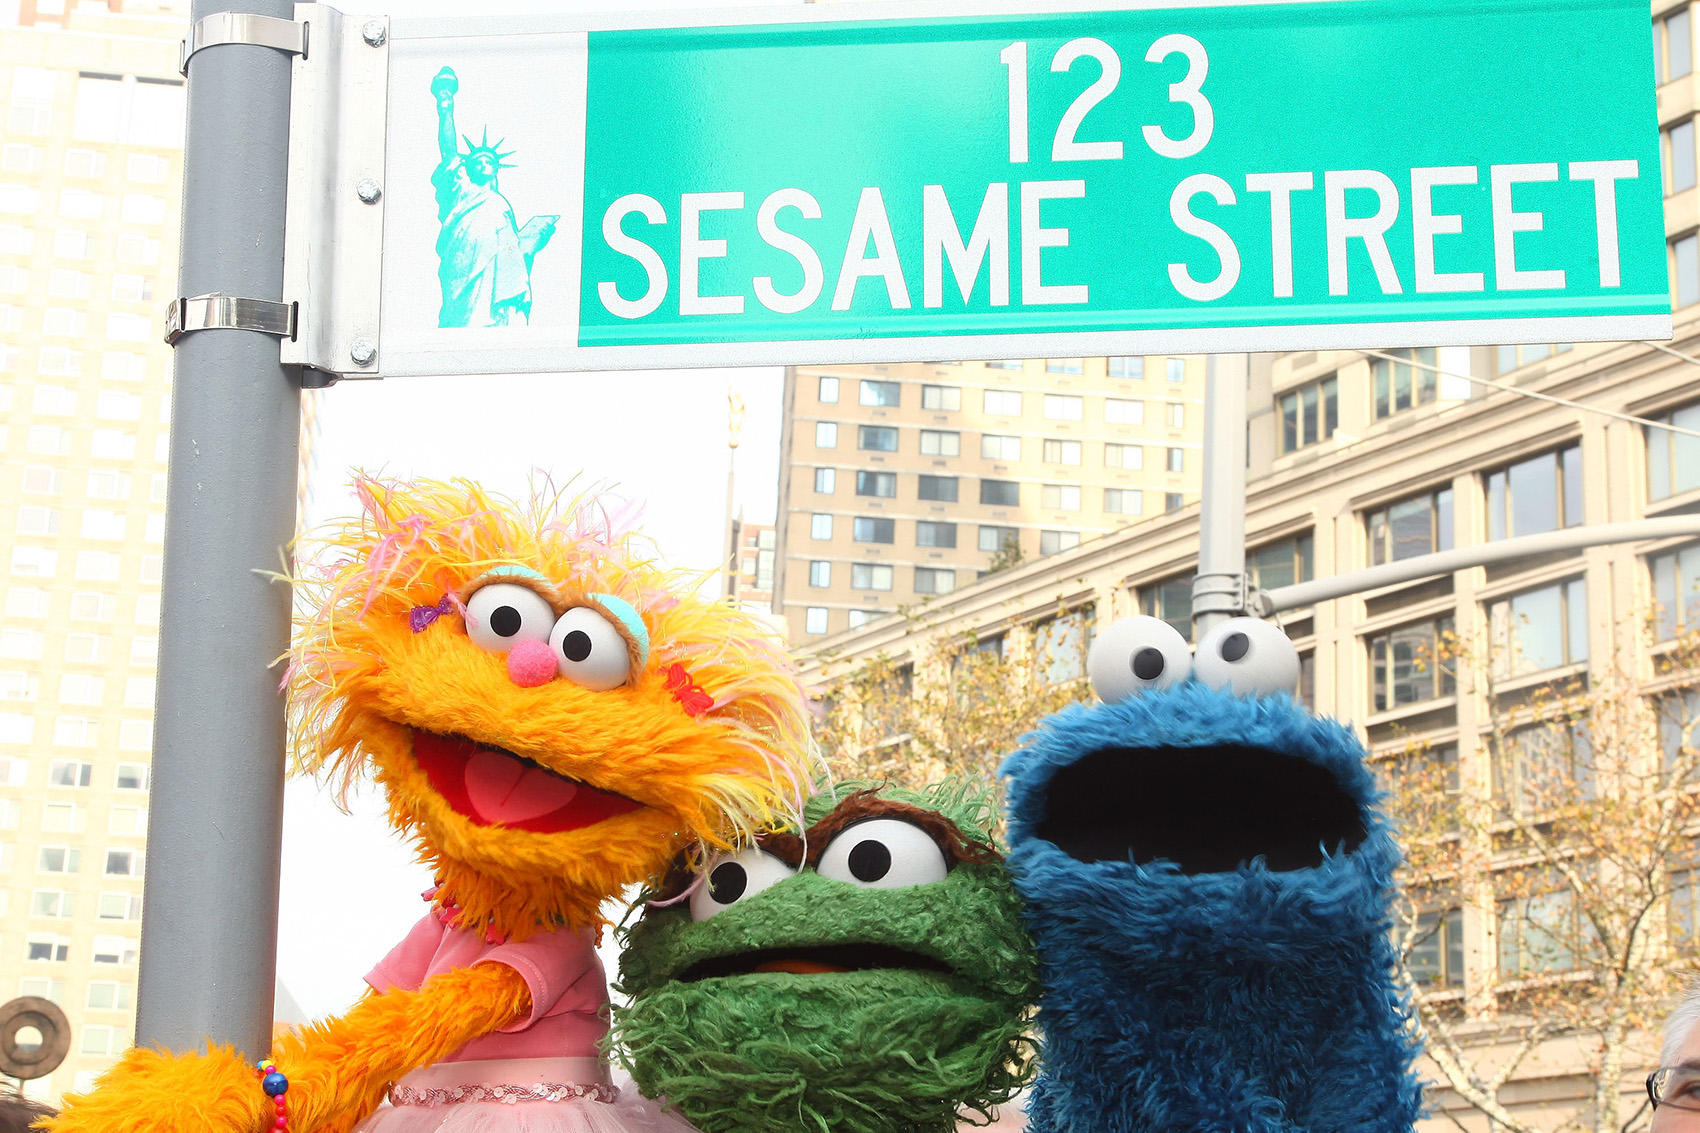 50 Years (And Counting) For 'Sesame Street'